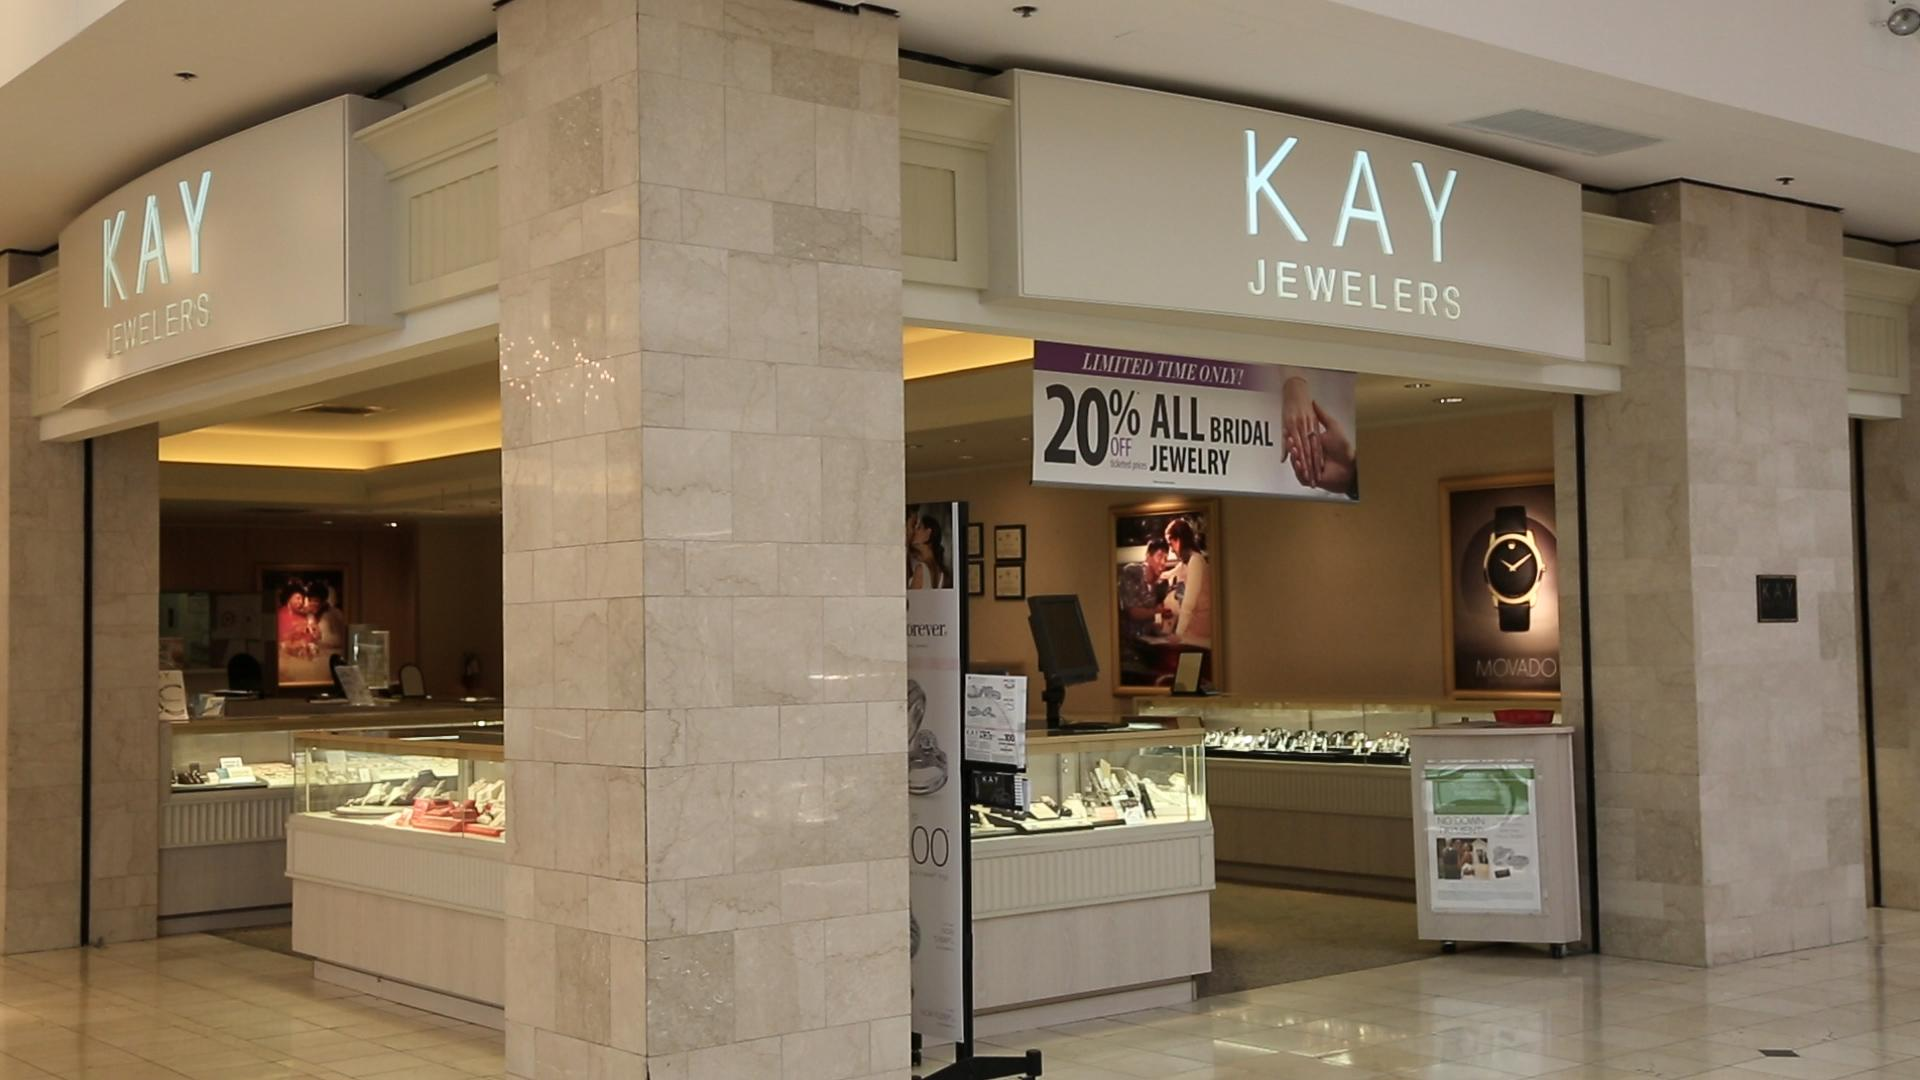 At fasttoronto9rr.cf you'll be sure to find the Kay Jewelers job you fasttoronto9rr.cf Job Postings Everyday · Find Jobs On-The-Go · World's Best Job Site · Easy Resume UploadServices: Service Catalog, Job Search Engine, Job Email Alerts, Resume Builder.